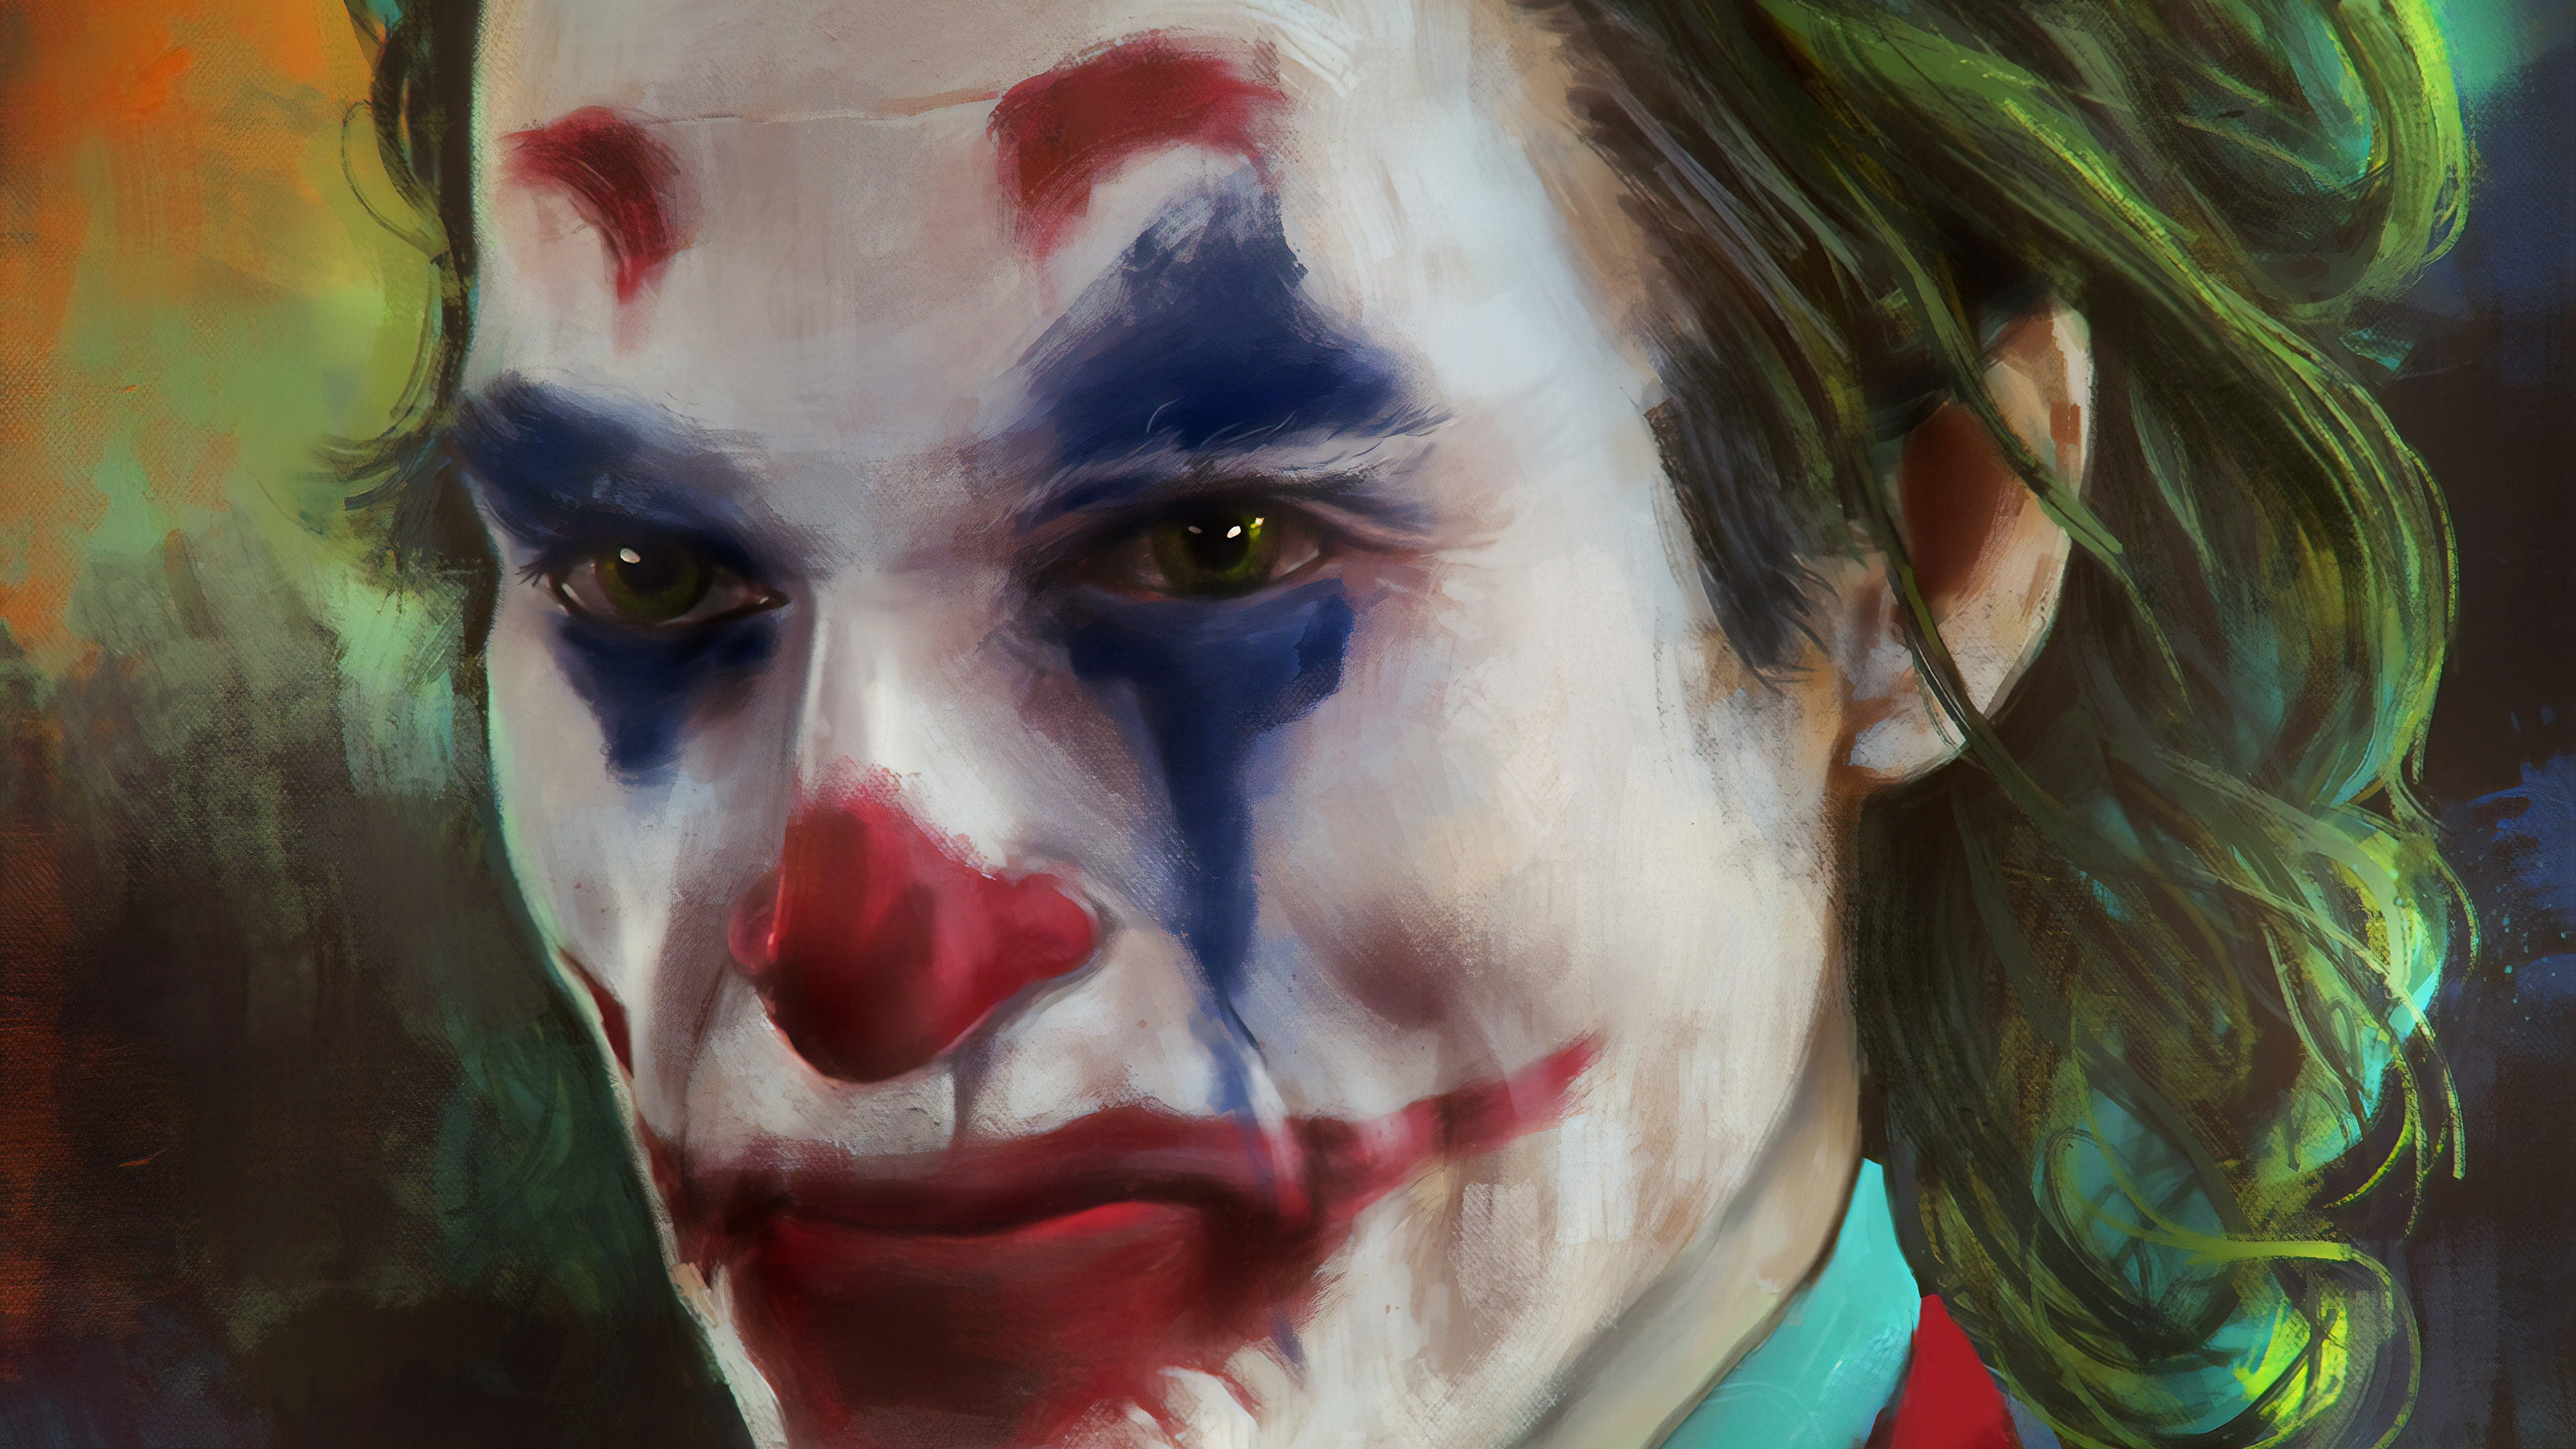 the joker joaquin phoenix 1565053058 - The Joker Joaquin Phoenix - superheroes wallpapers, movies wallpapers, joker wallpapers, joker movie wallpapers, joaquin phoenix wallpapers, hd-wallpapers, artwork wallpapers, artstation wallpapers, 4k-wallpapers, 2019 movies wallpapers